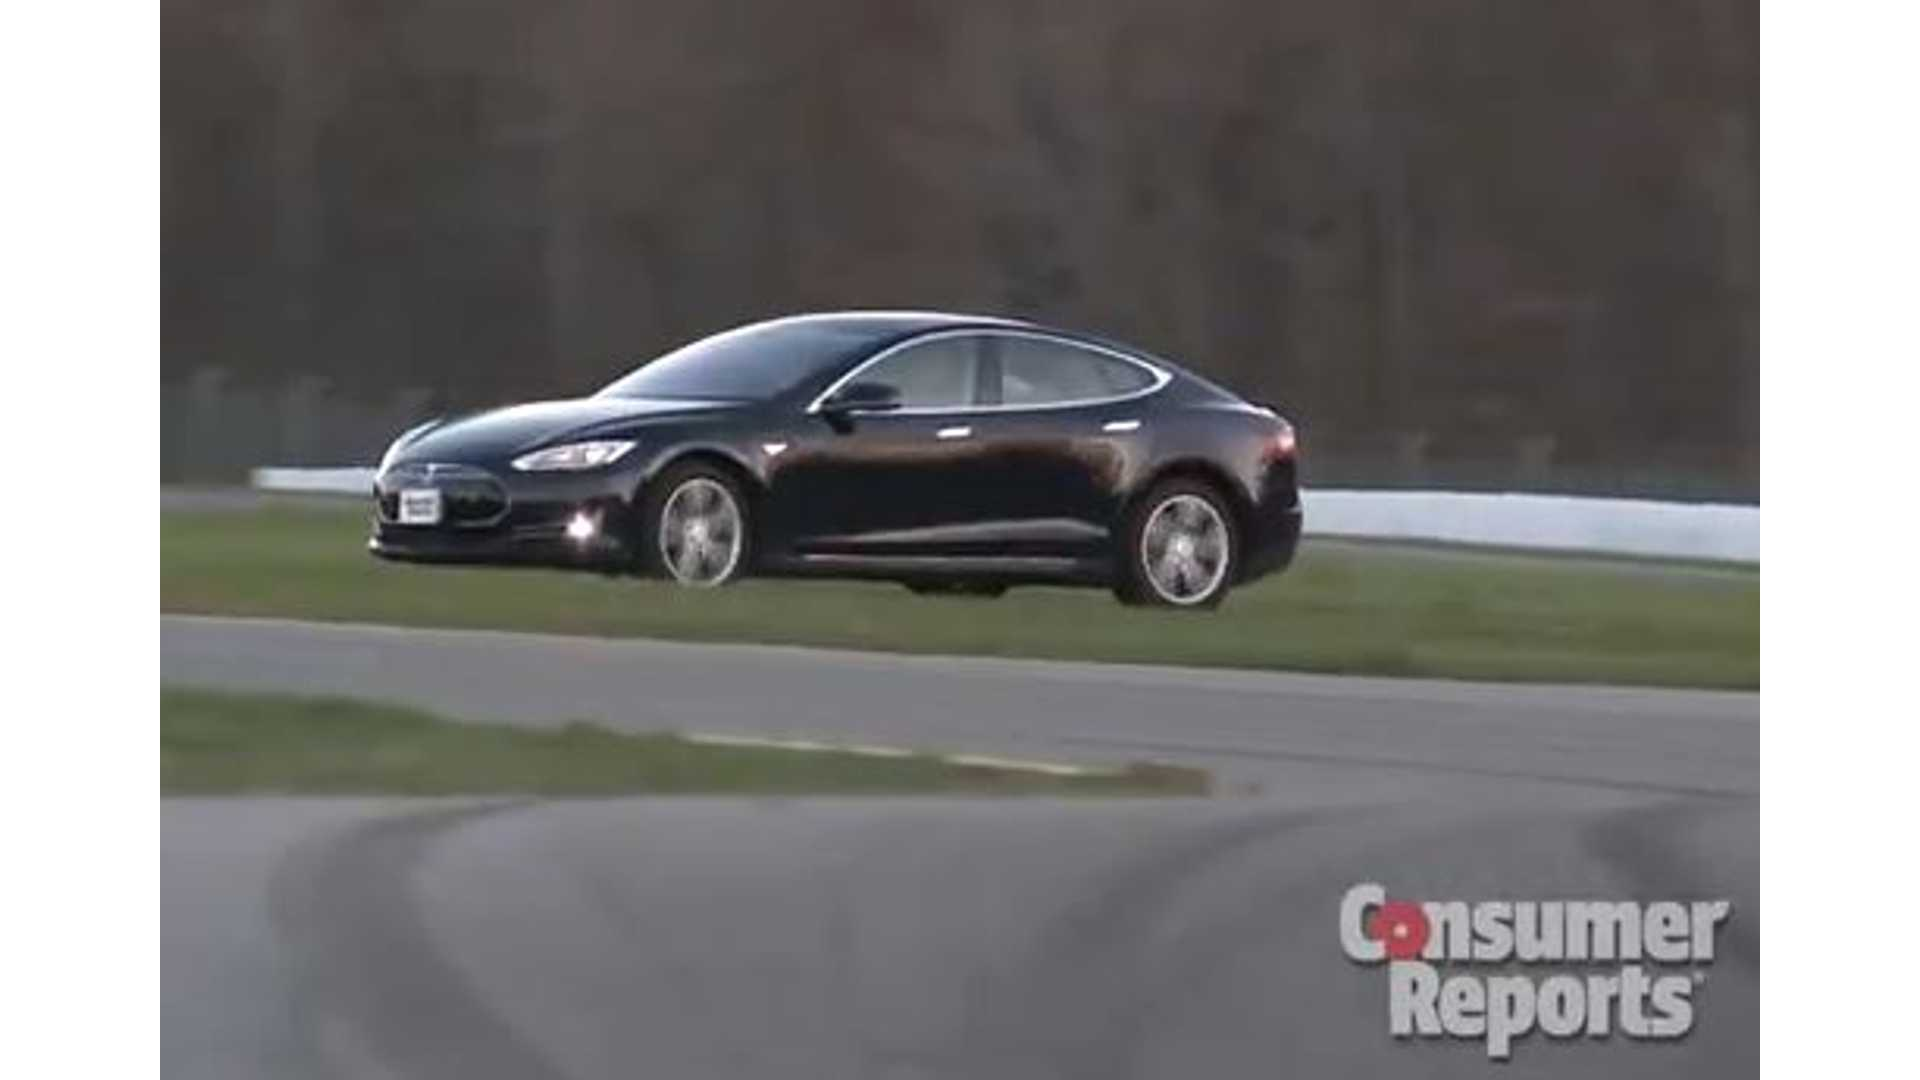 Consumer Reports Road Trip Proves That Tesla Model S is